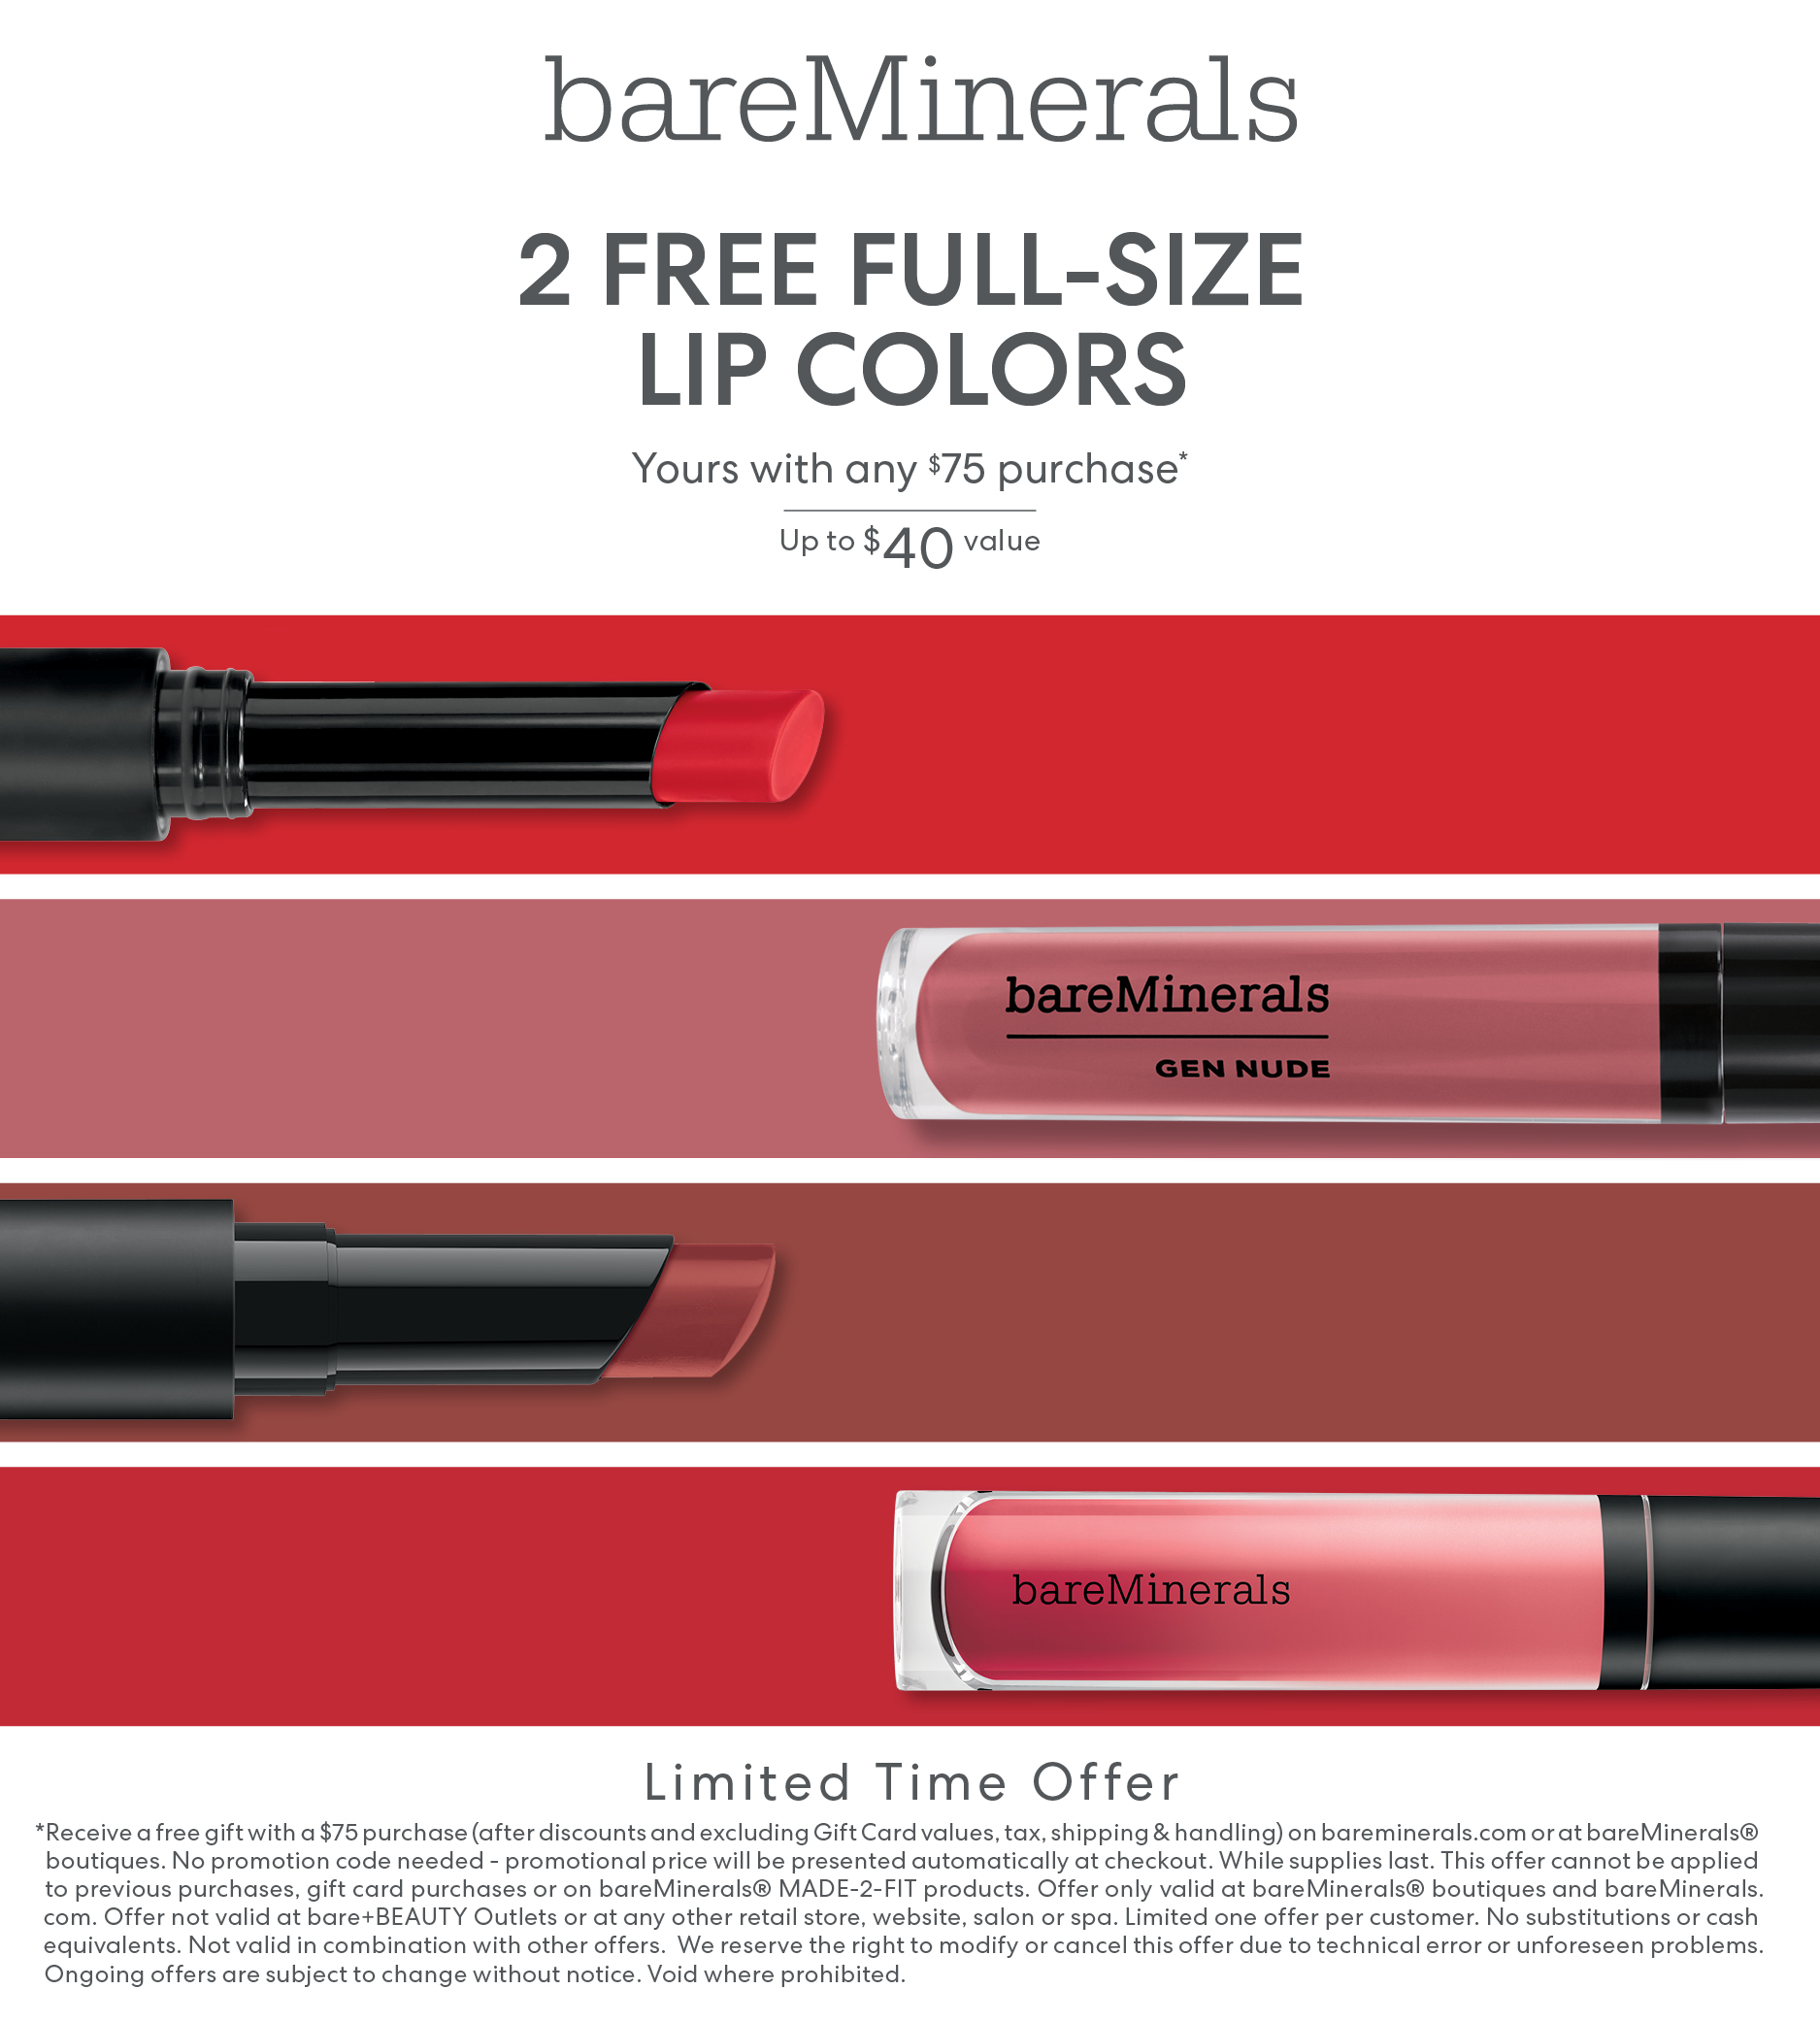 Receive any 2 lip colors with a $75. 00 purchase from bareMinerals